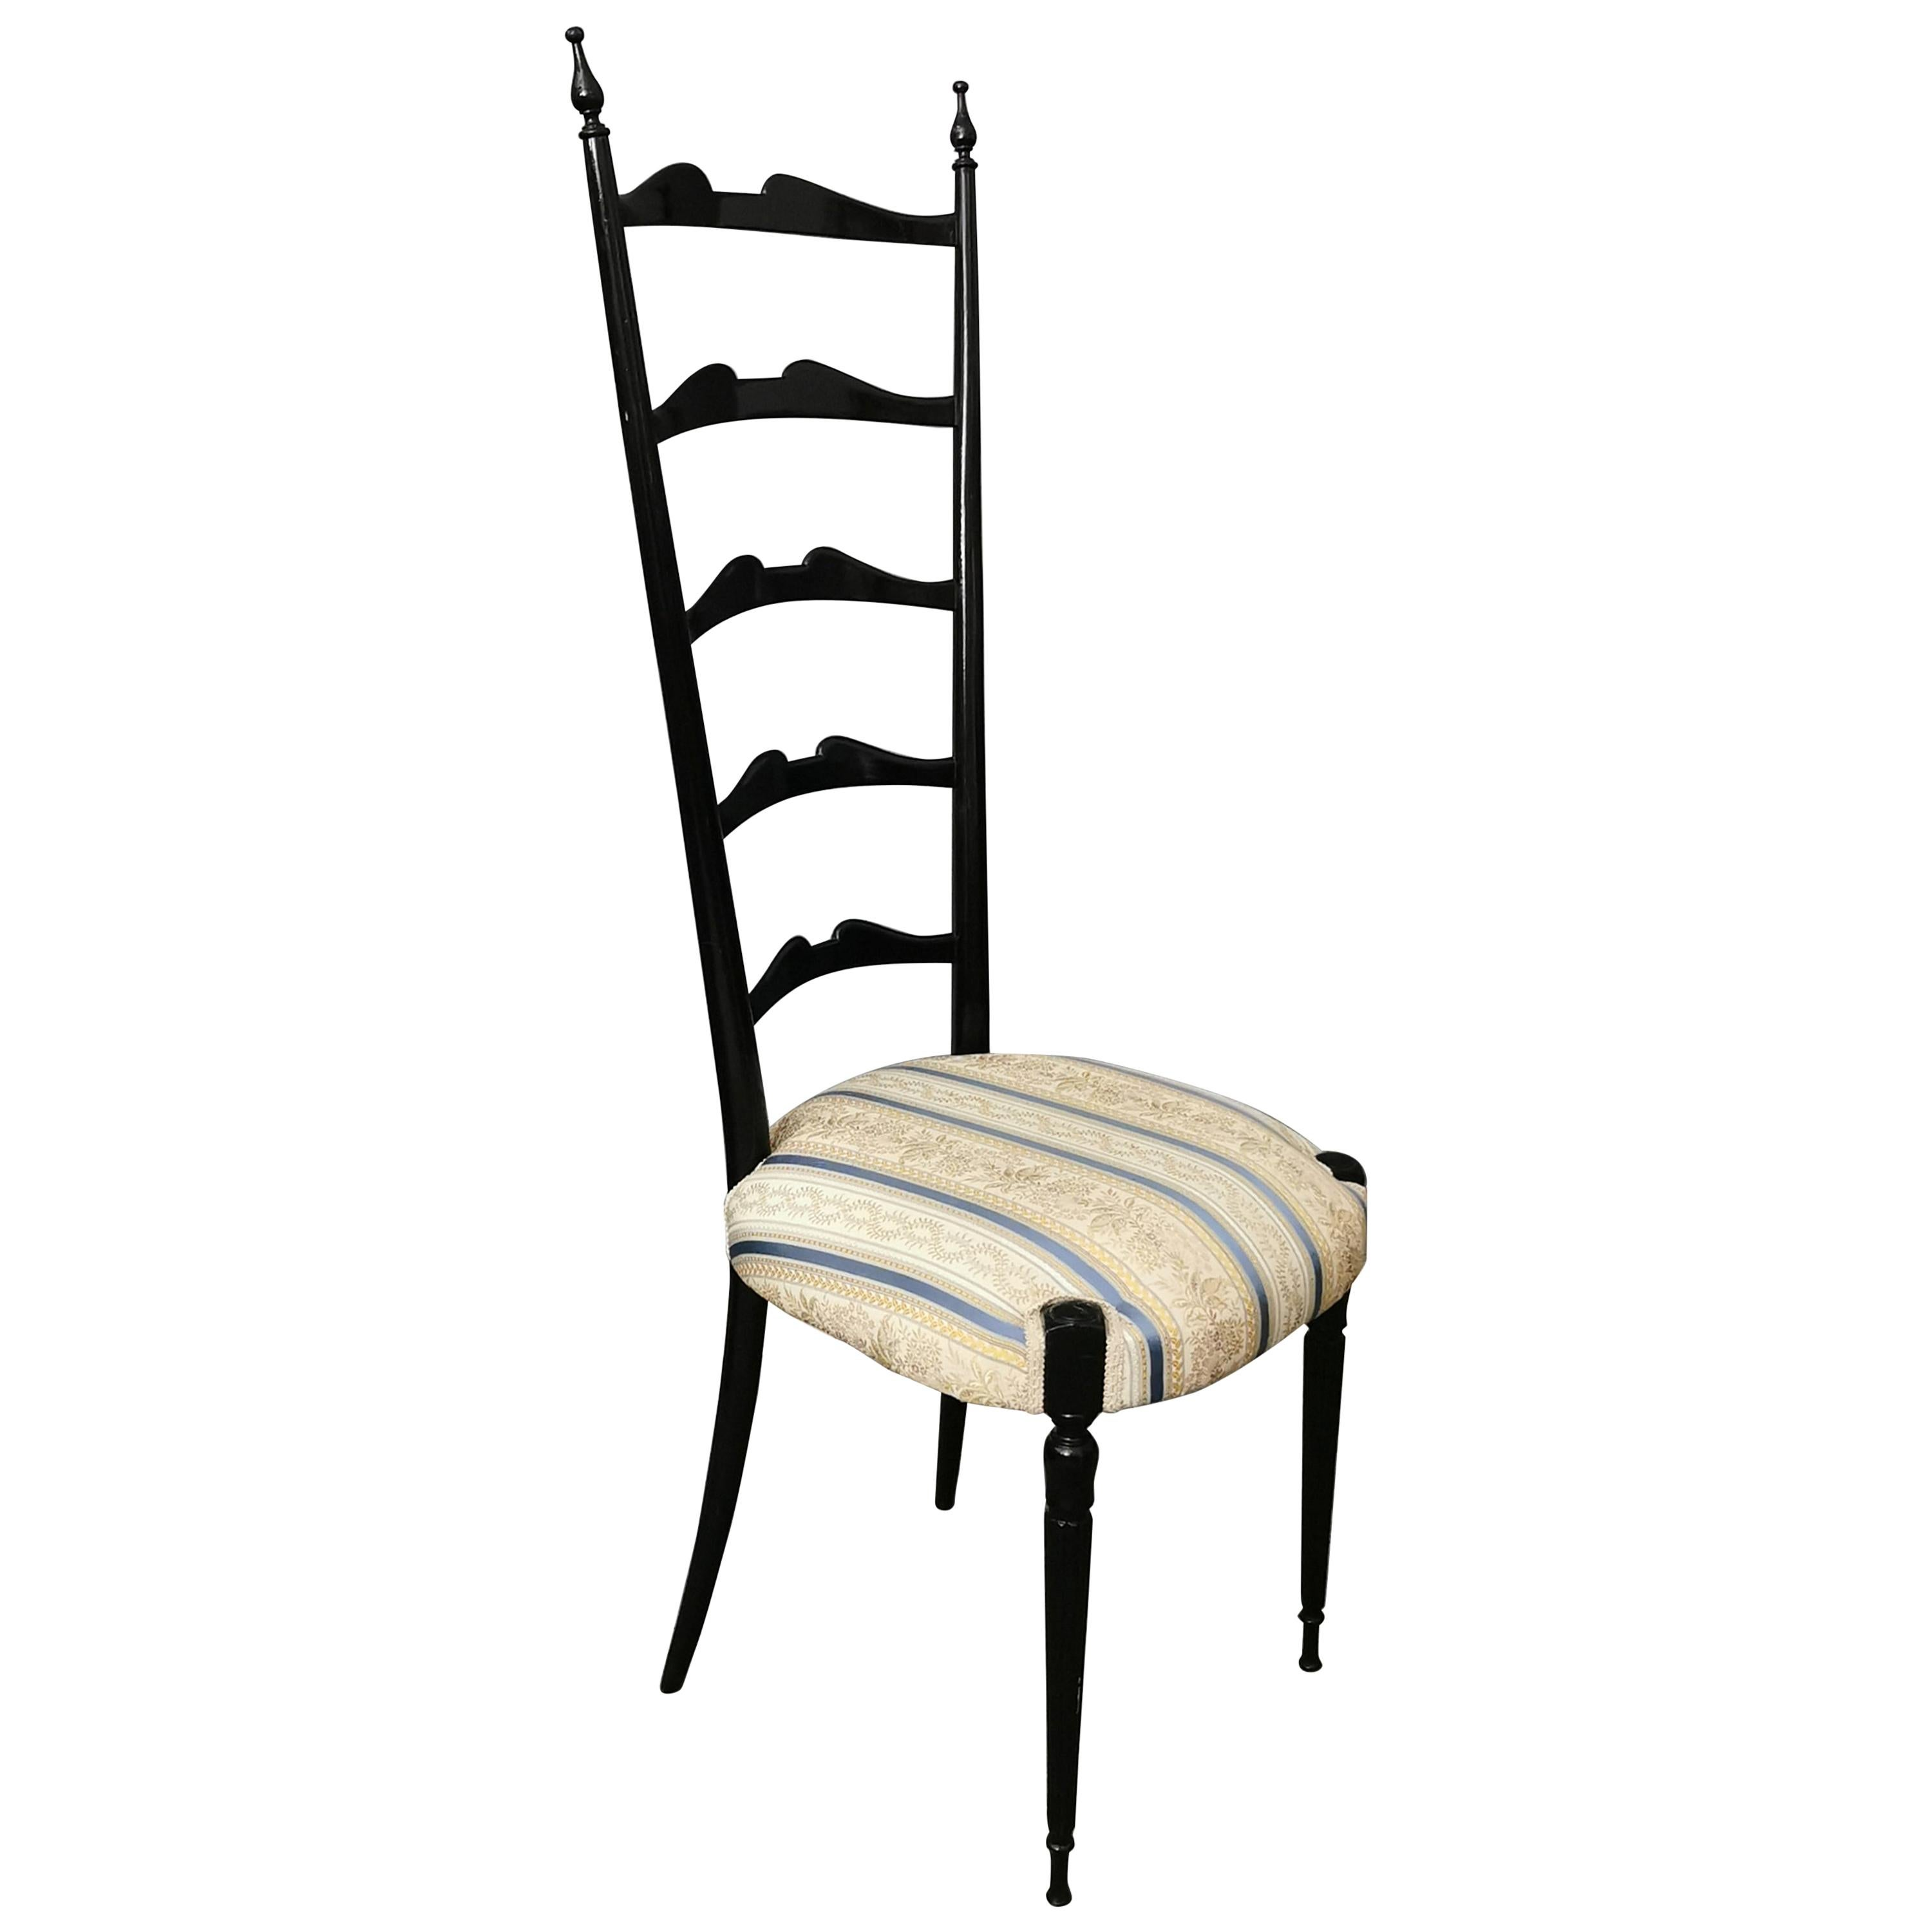 Mid Century Chair in Black Wood Damask Fabric by Chiavari Italy 1950s